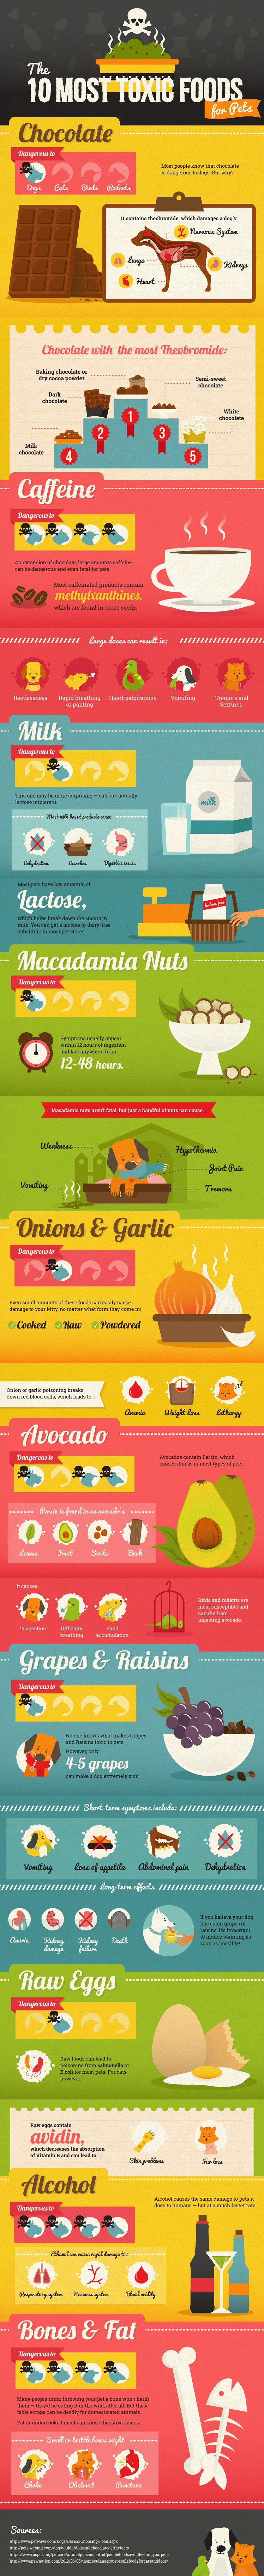 Toxic Foods for Pets Infographic